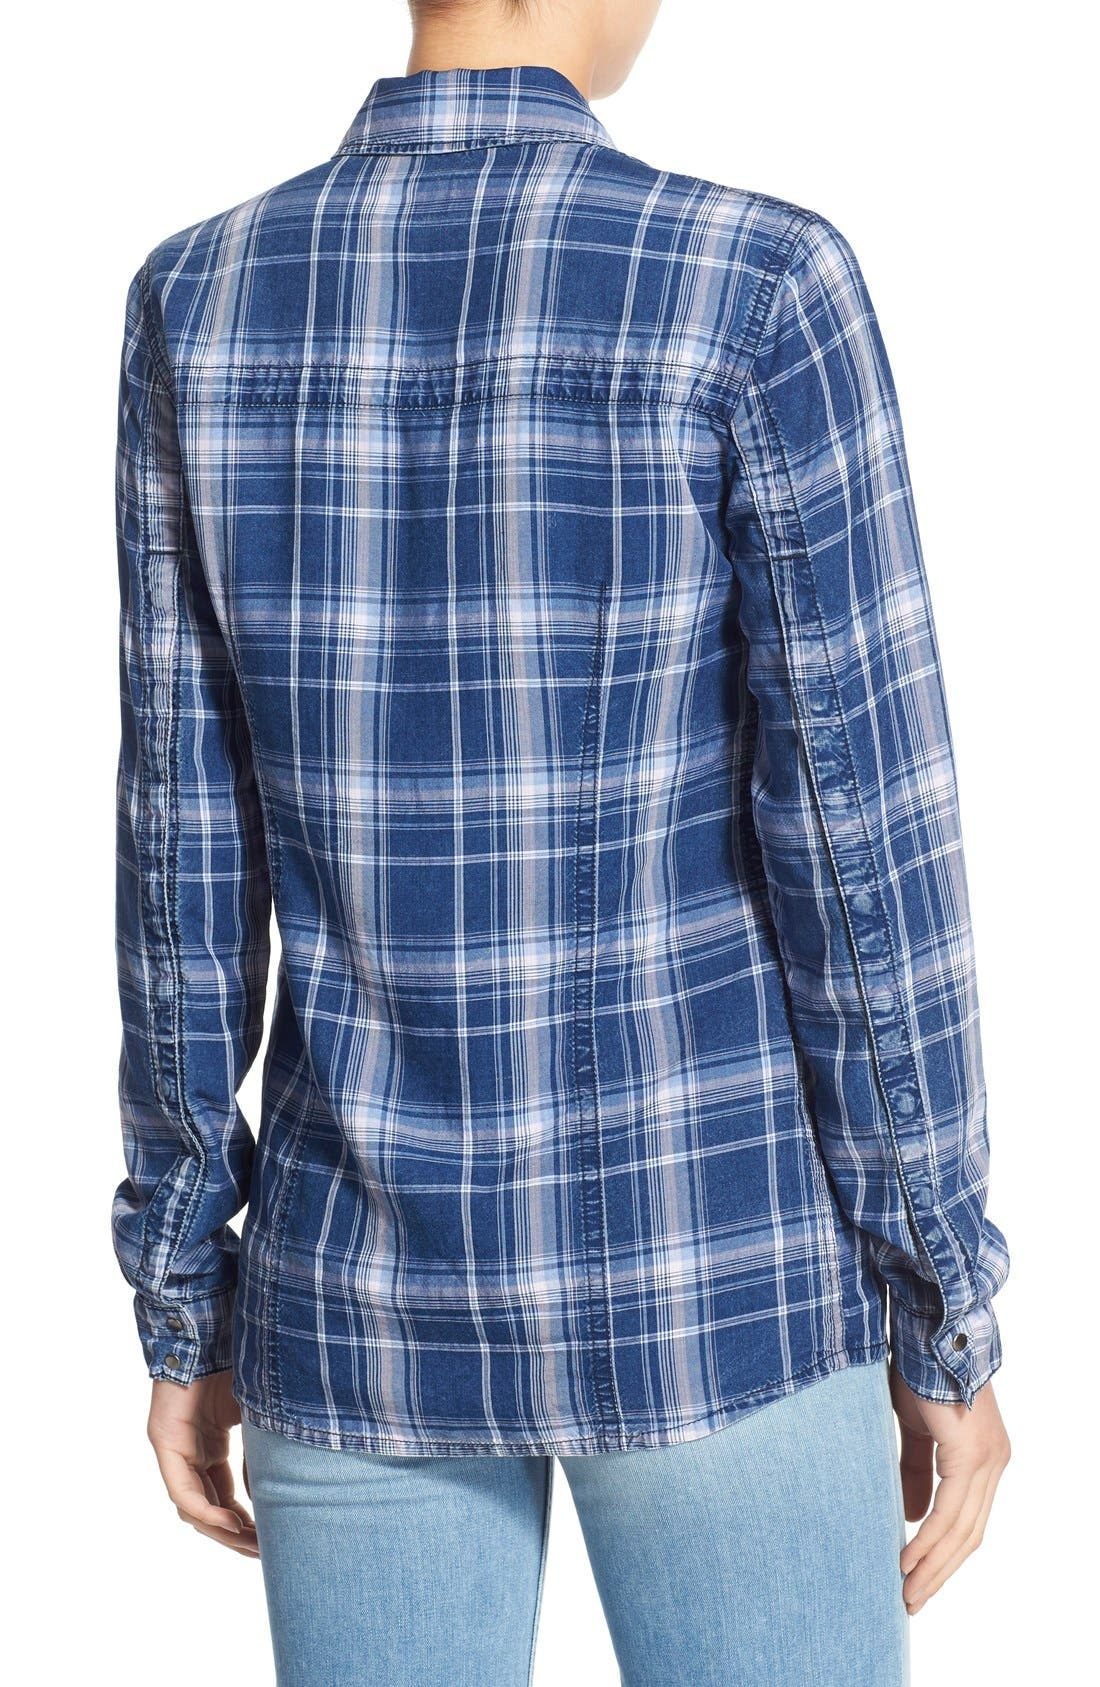 Alternate Image 2  - Hudson Jeans 'Britt' Plaid Shirt